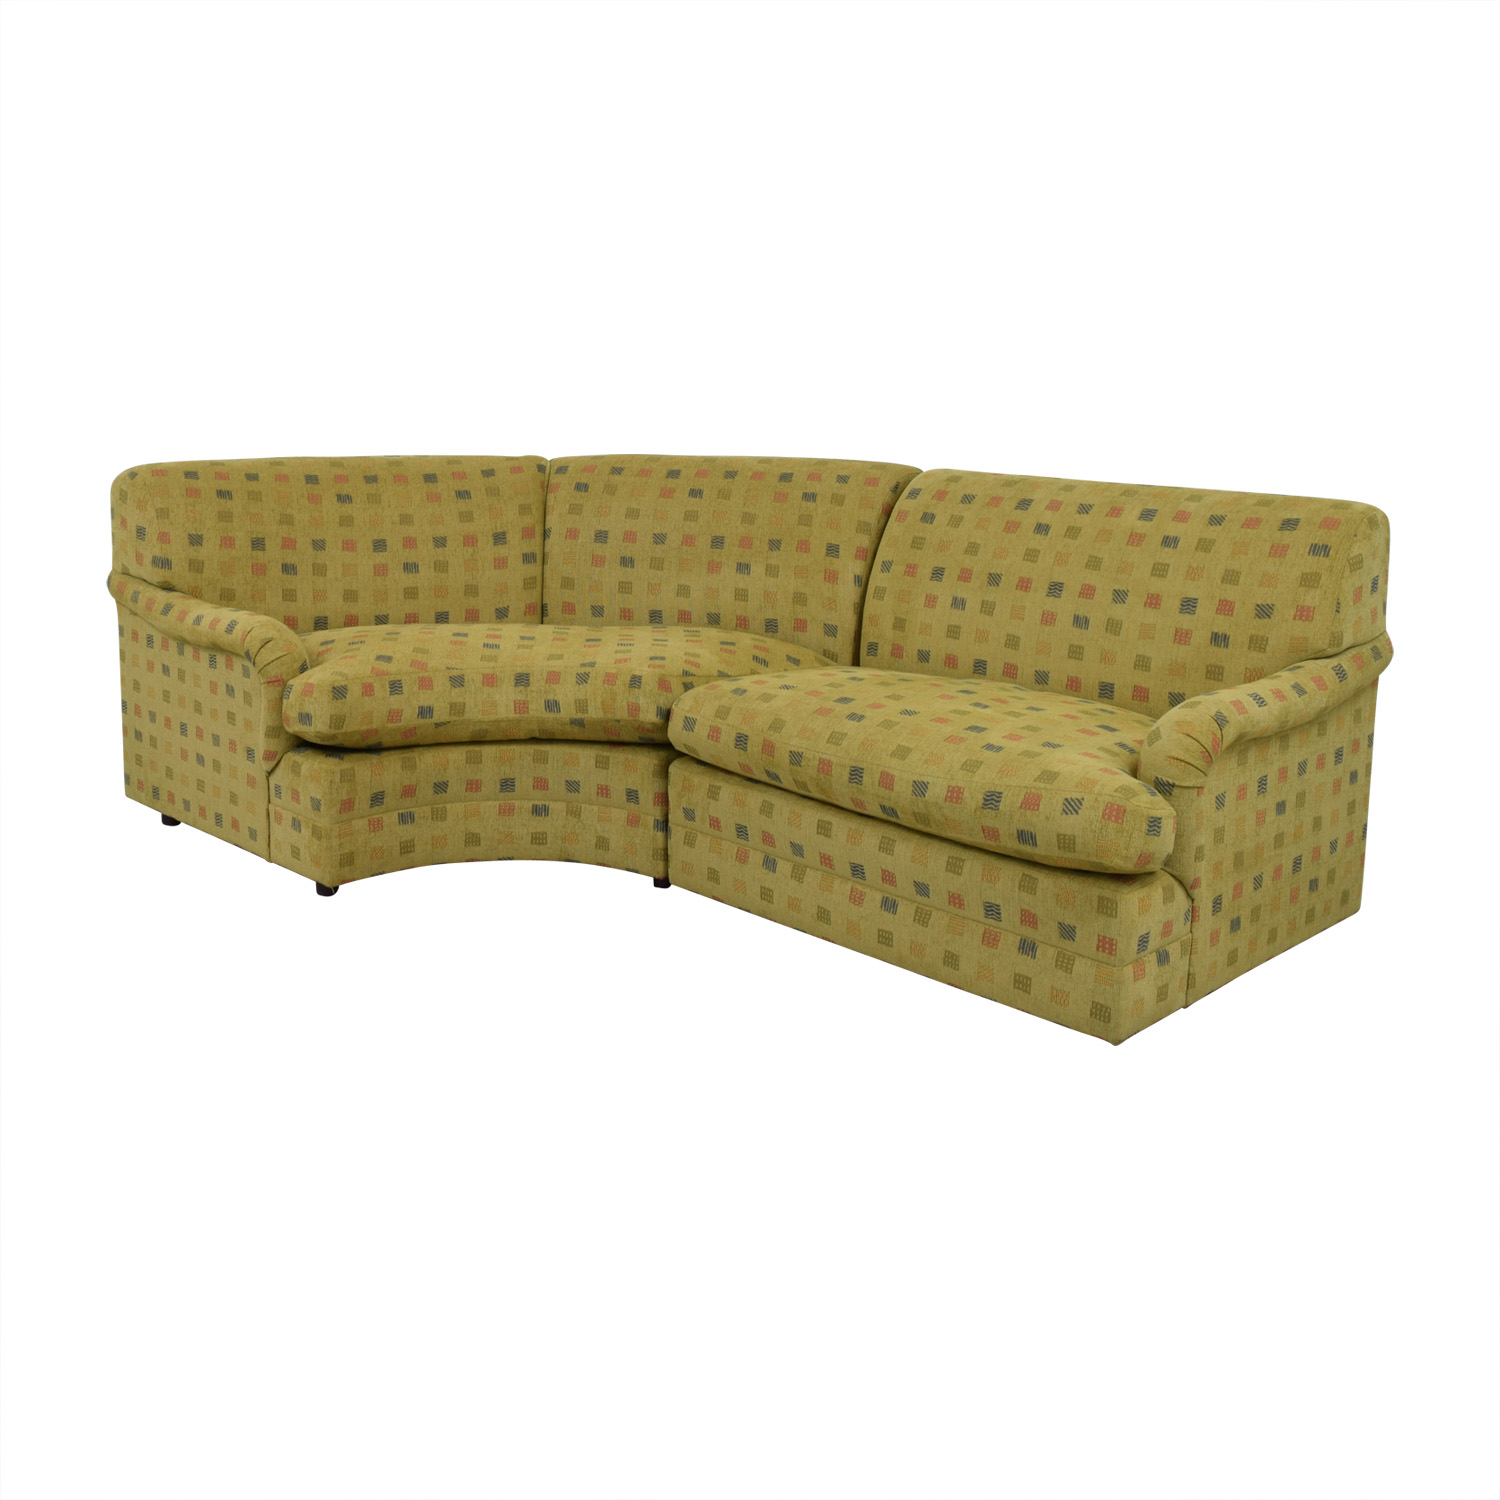 crate and barrel lounge sofa pilling cama estilo ingles 74 off mason art mustard custom curved sofas for sale